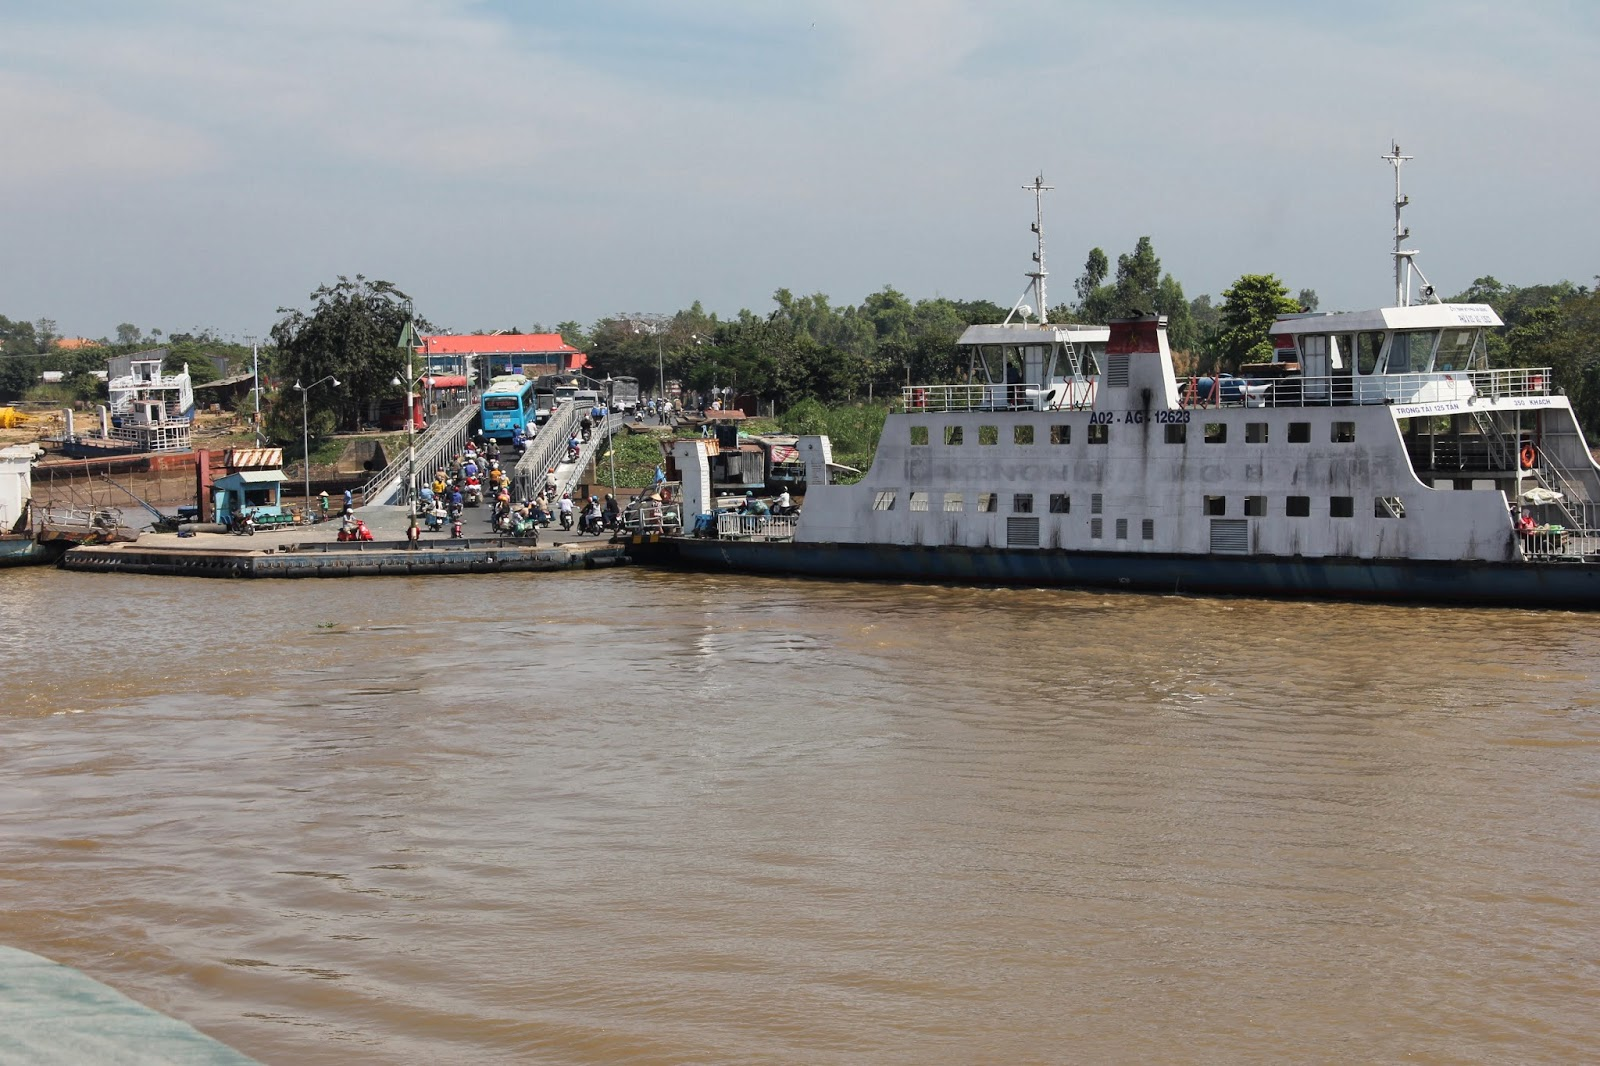 A ferry across the Mekong River.